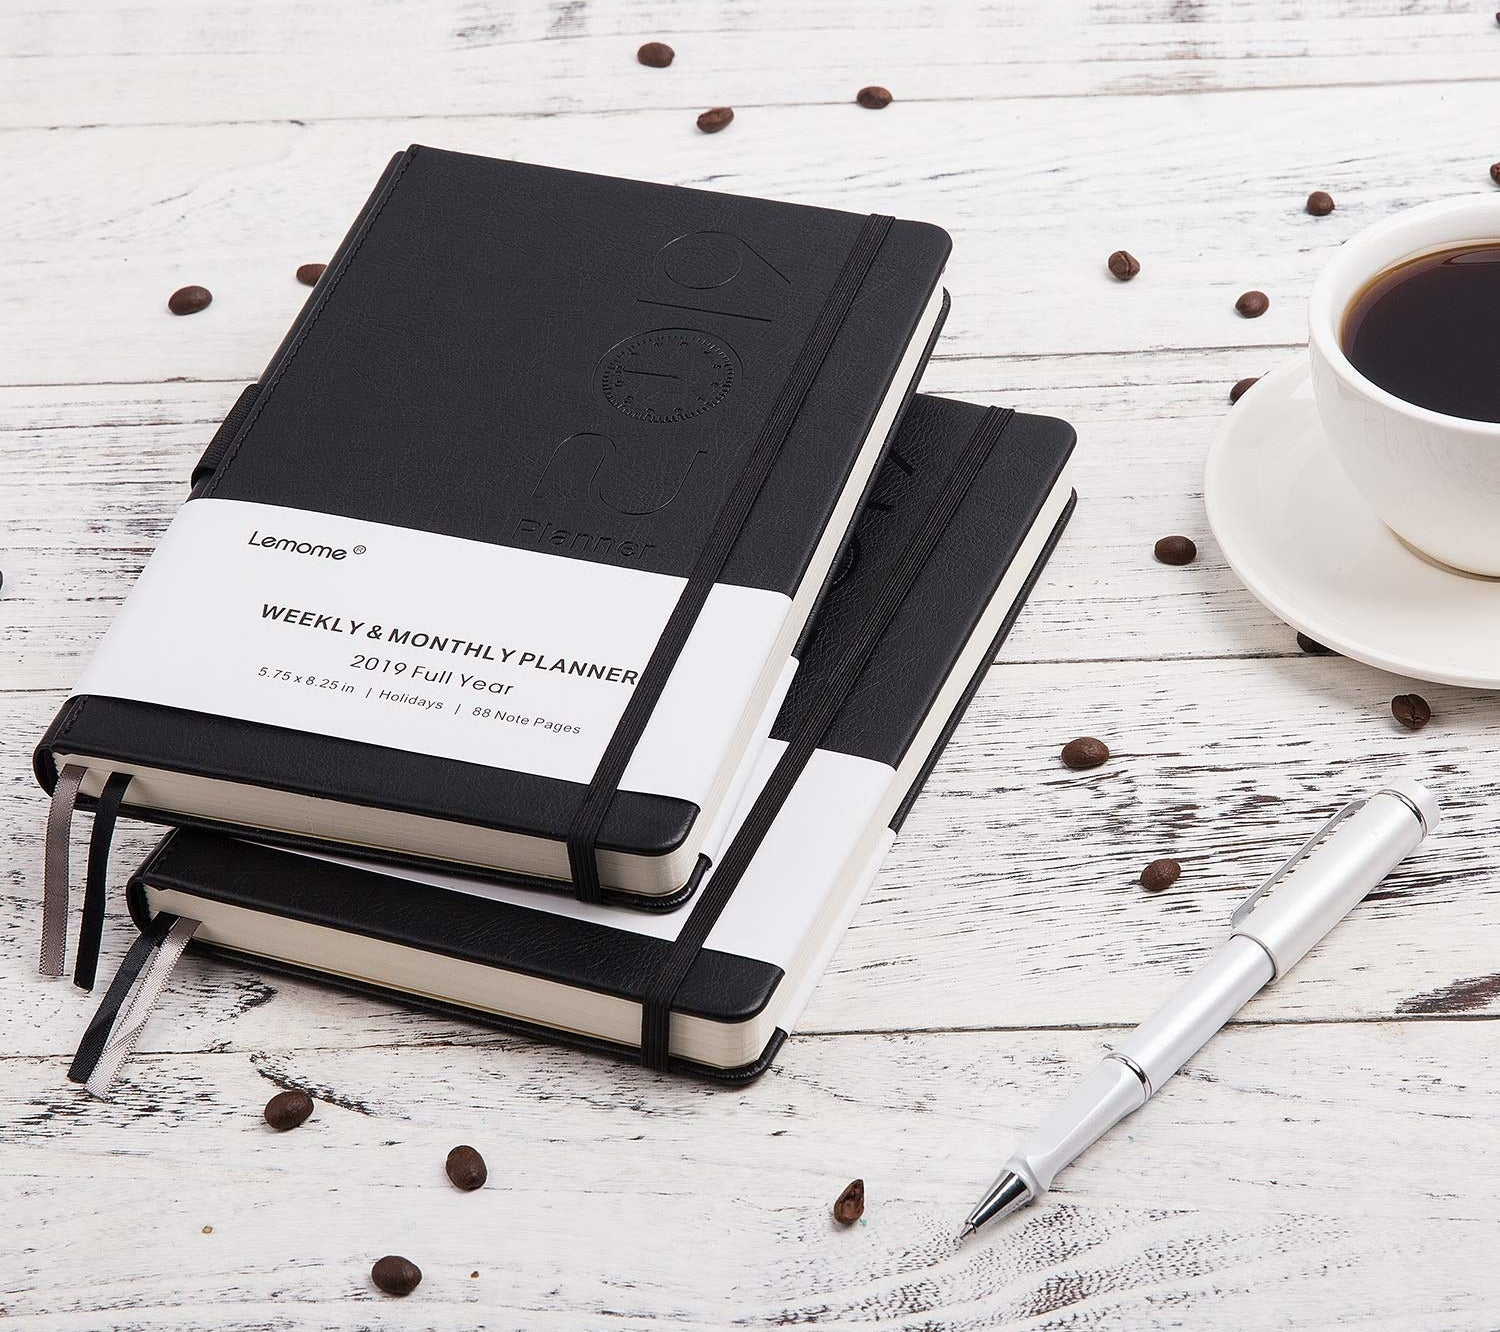 Monthly planner on white wooden table